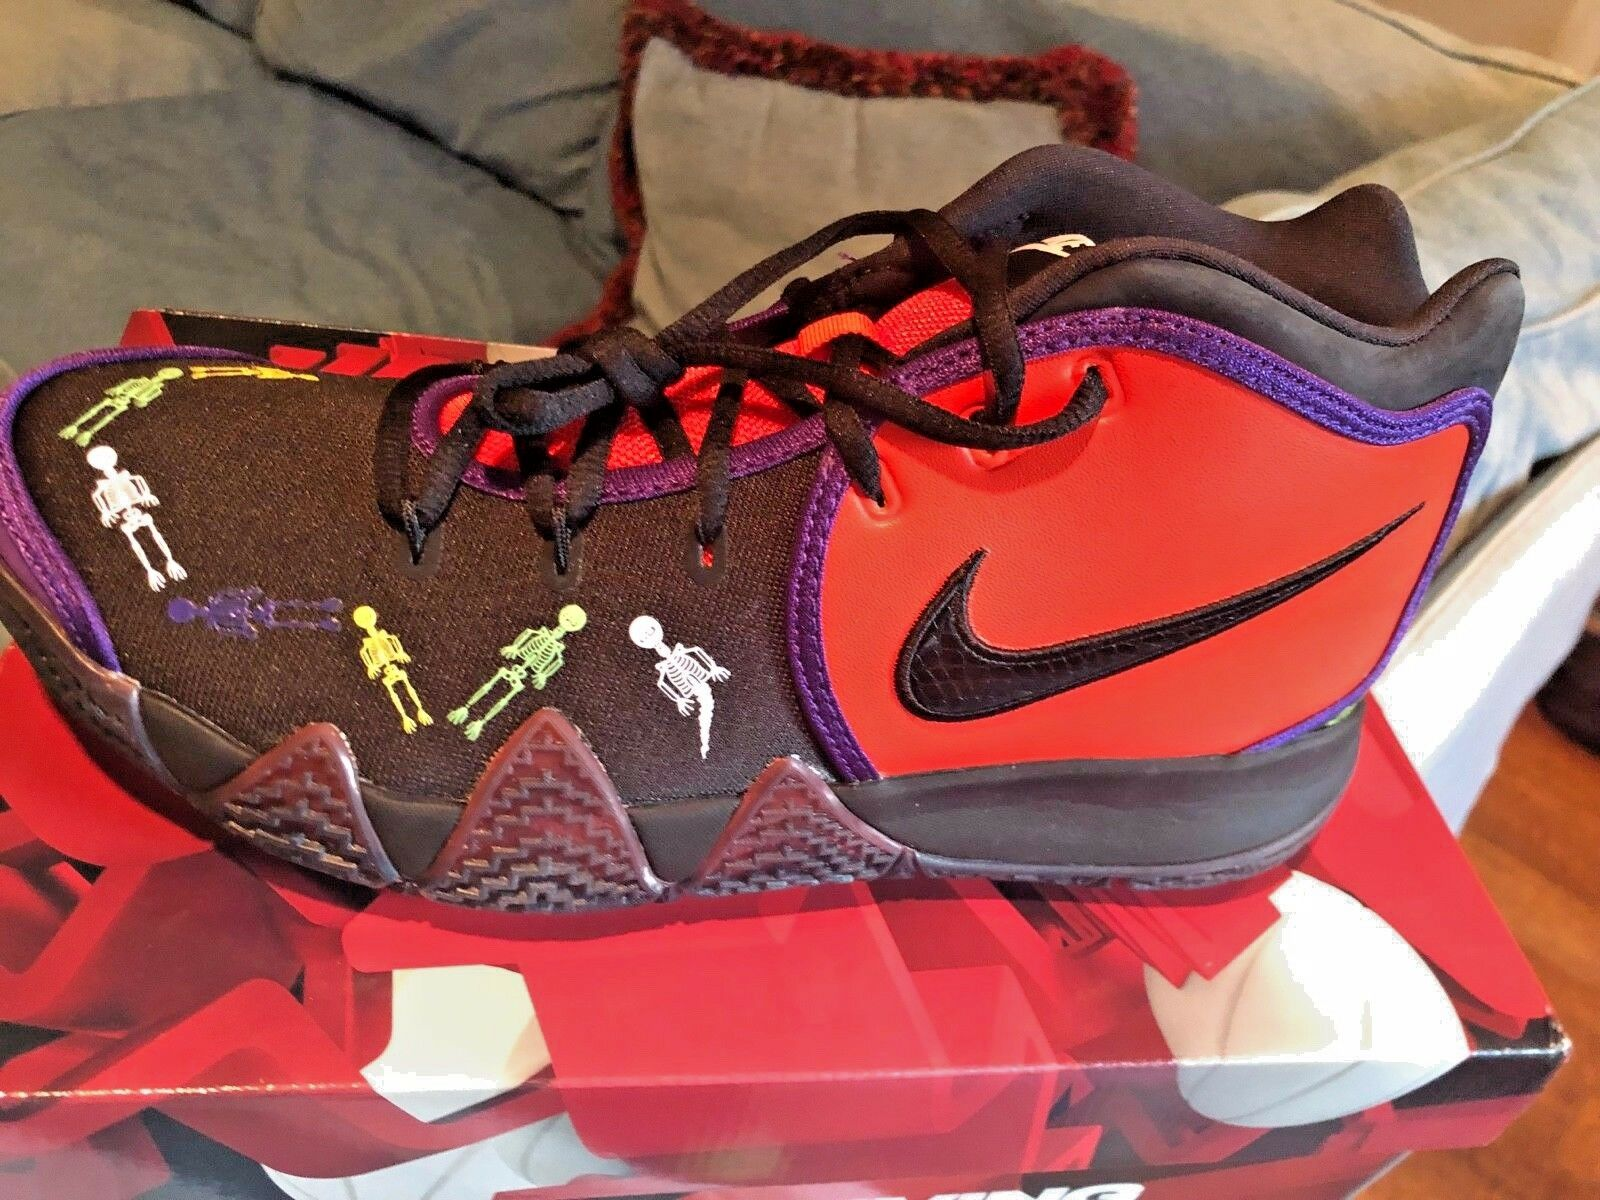 NIKE KYRIE 4 DOTD TV PE 1 BASKETBALL SHOES,NIB,DS,SZ. 10.5,NIKEC10278-800